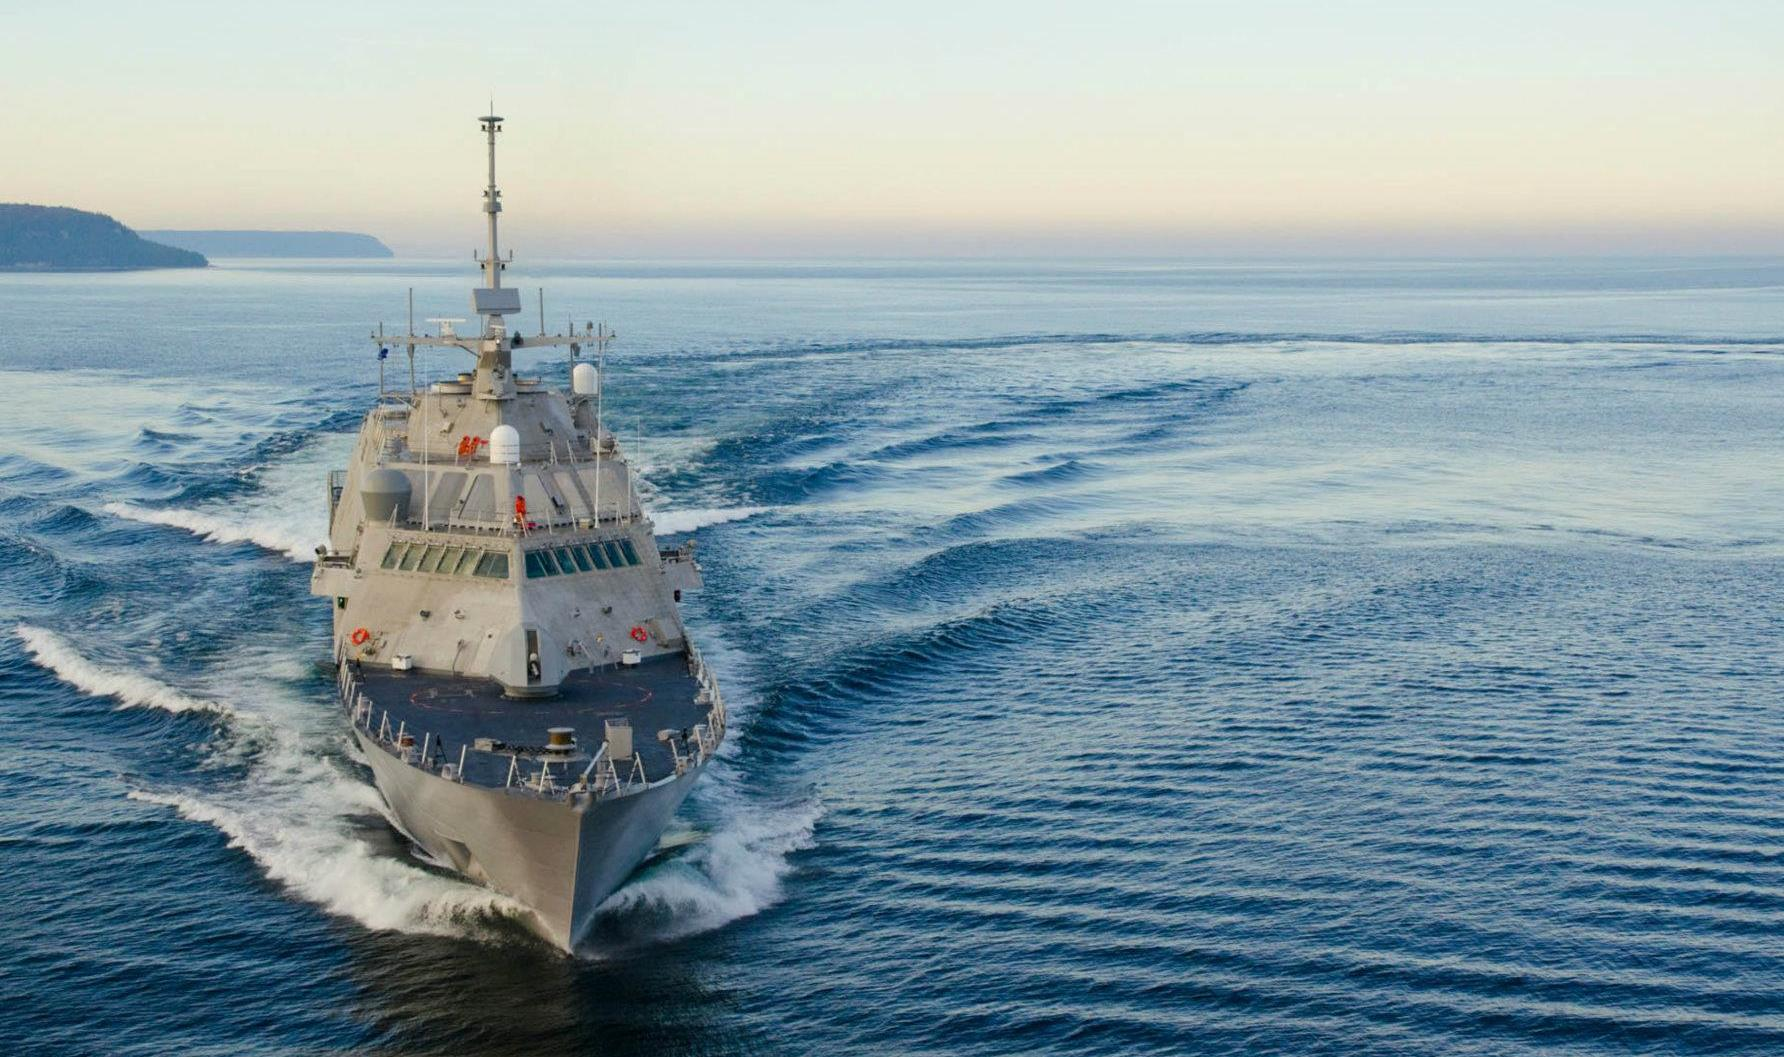 Fort Worth (LCS-3) conducts builders trials in 2011. Lockheed Martin Photo